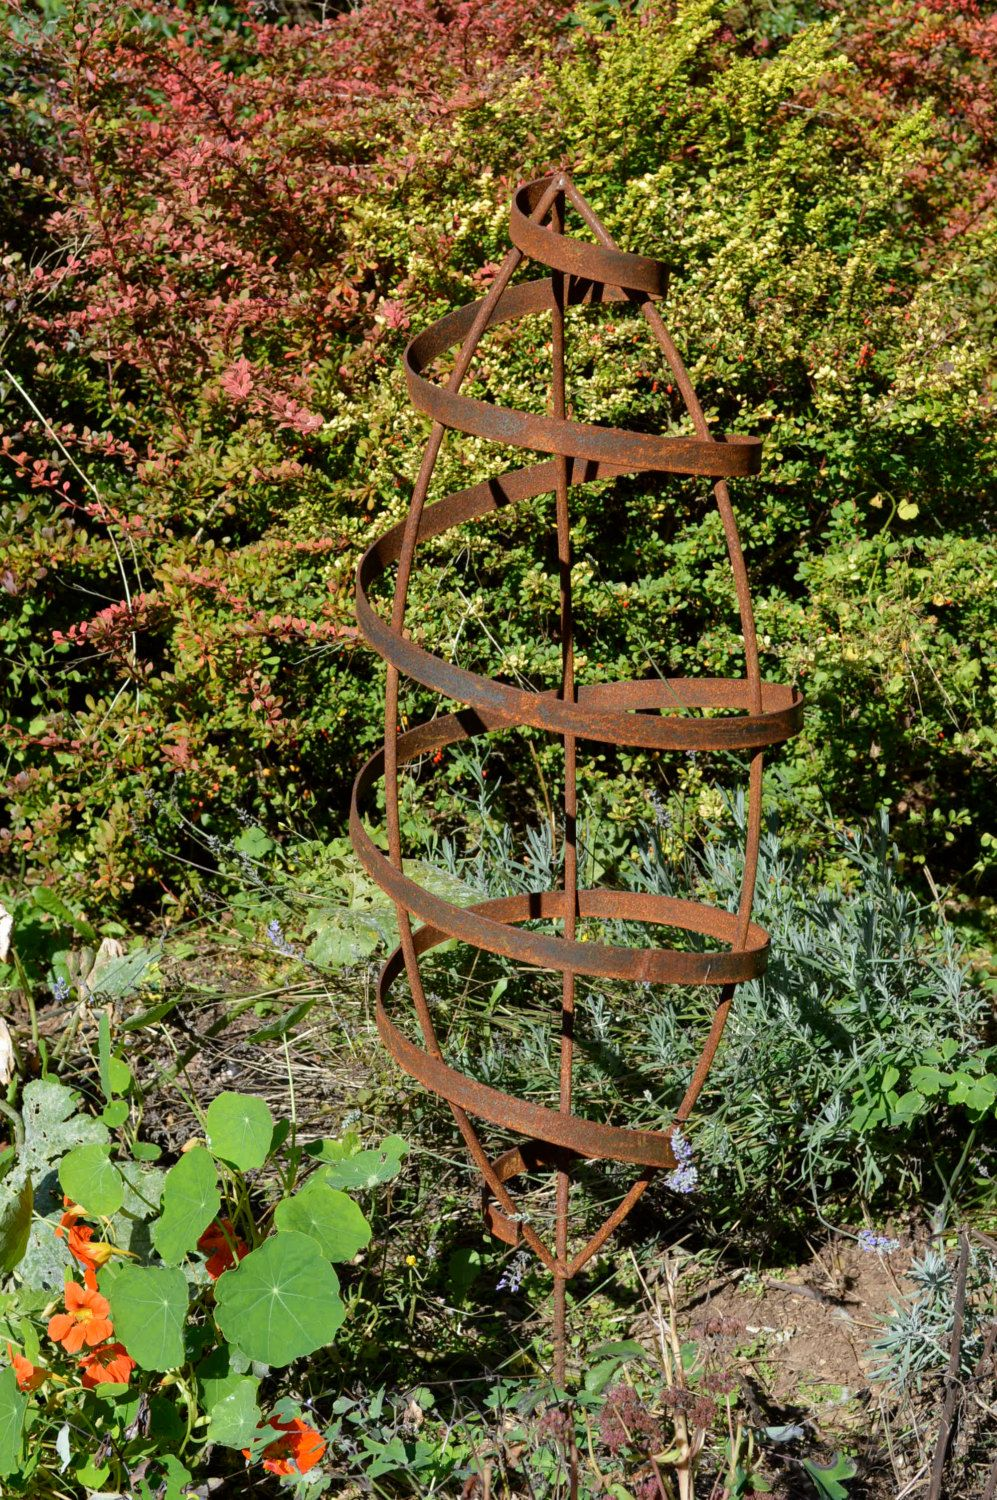 Gentil READY TO SHIP Garden Trellis Seed Pod Art Rustic Sculpture